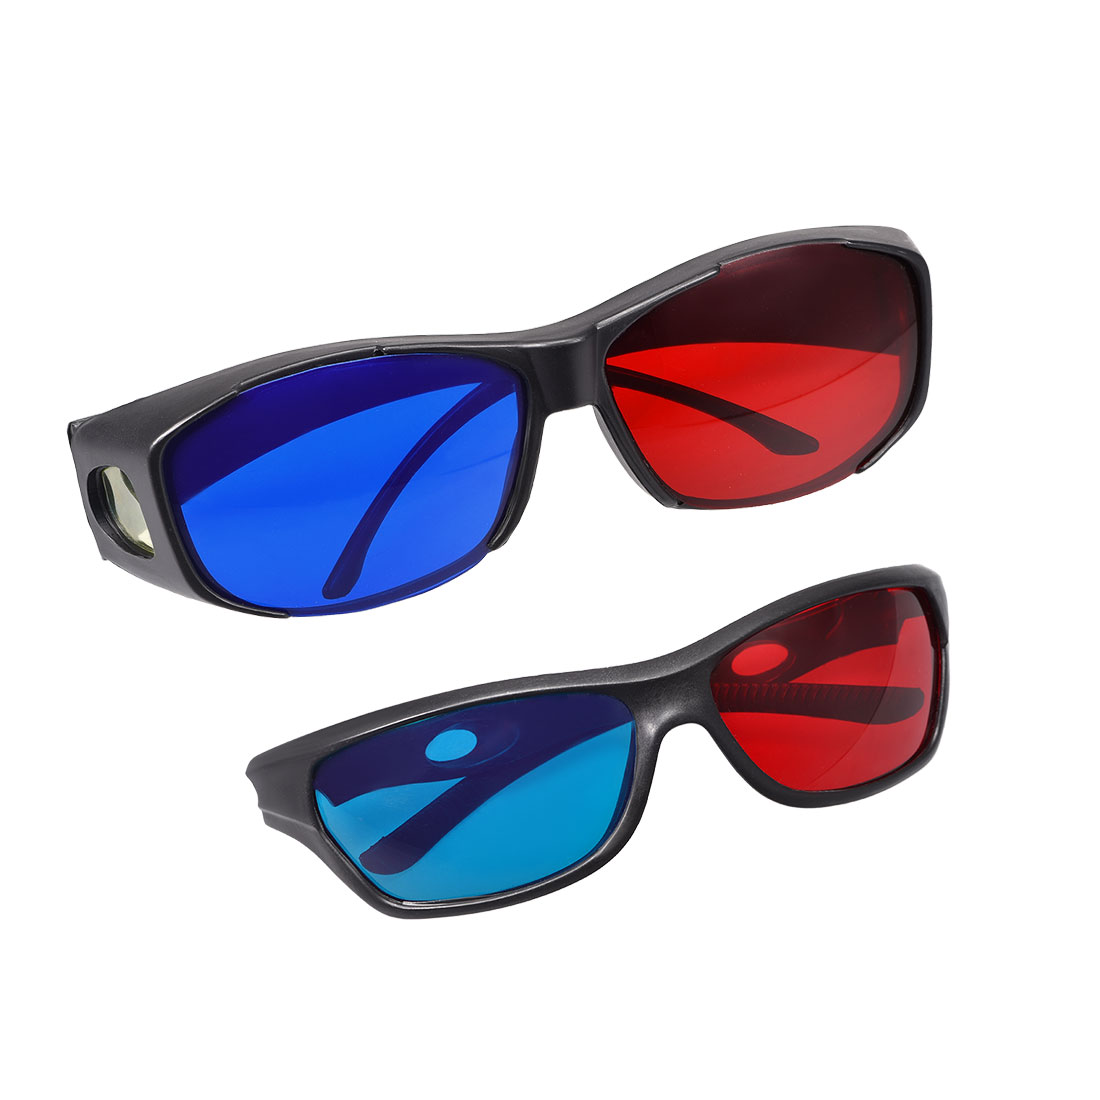 Red-Blue 3D Glasses Black Frame 3D Visoin Glass for Movies Anaglyph Photos 2set